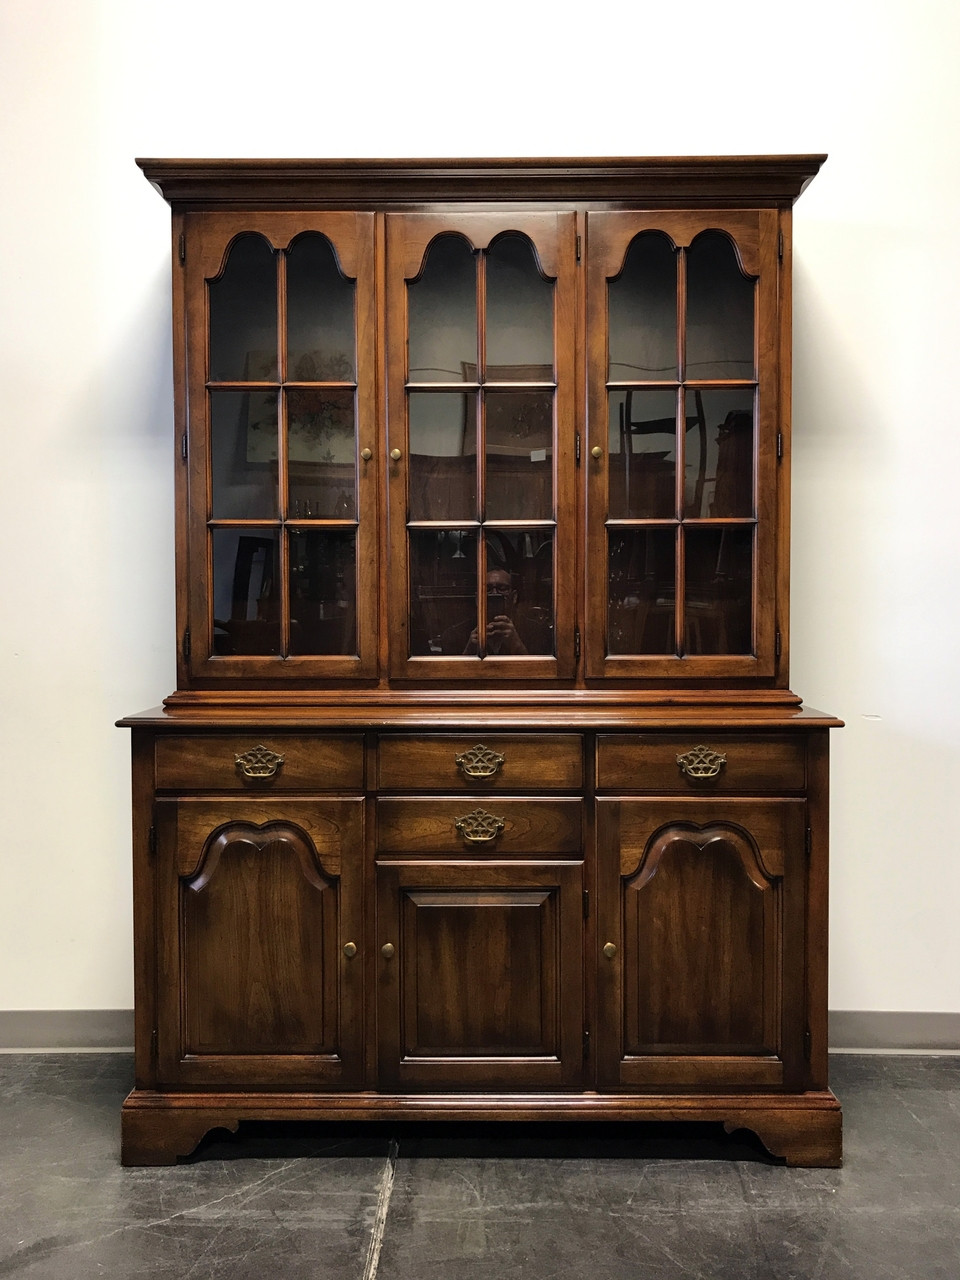 SOLD OUT - STATTON Oxford Antique Cherry China Cabinet Hutch - SOLD OUT - STATTON Oxford Antique Cherry China Cabinet Hutch